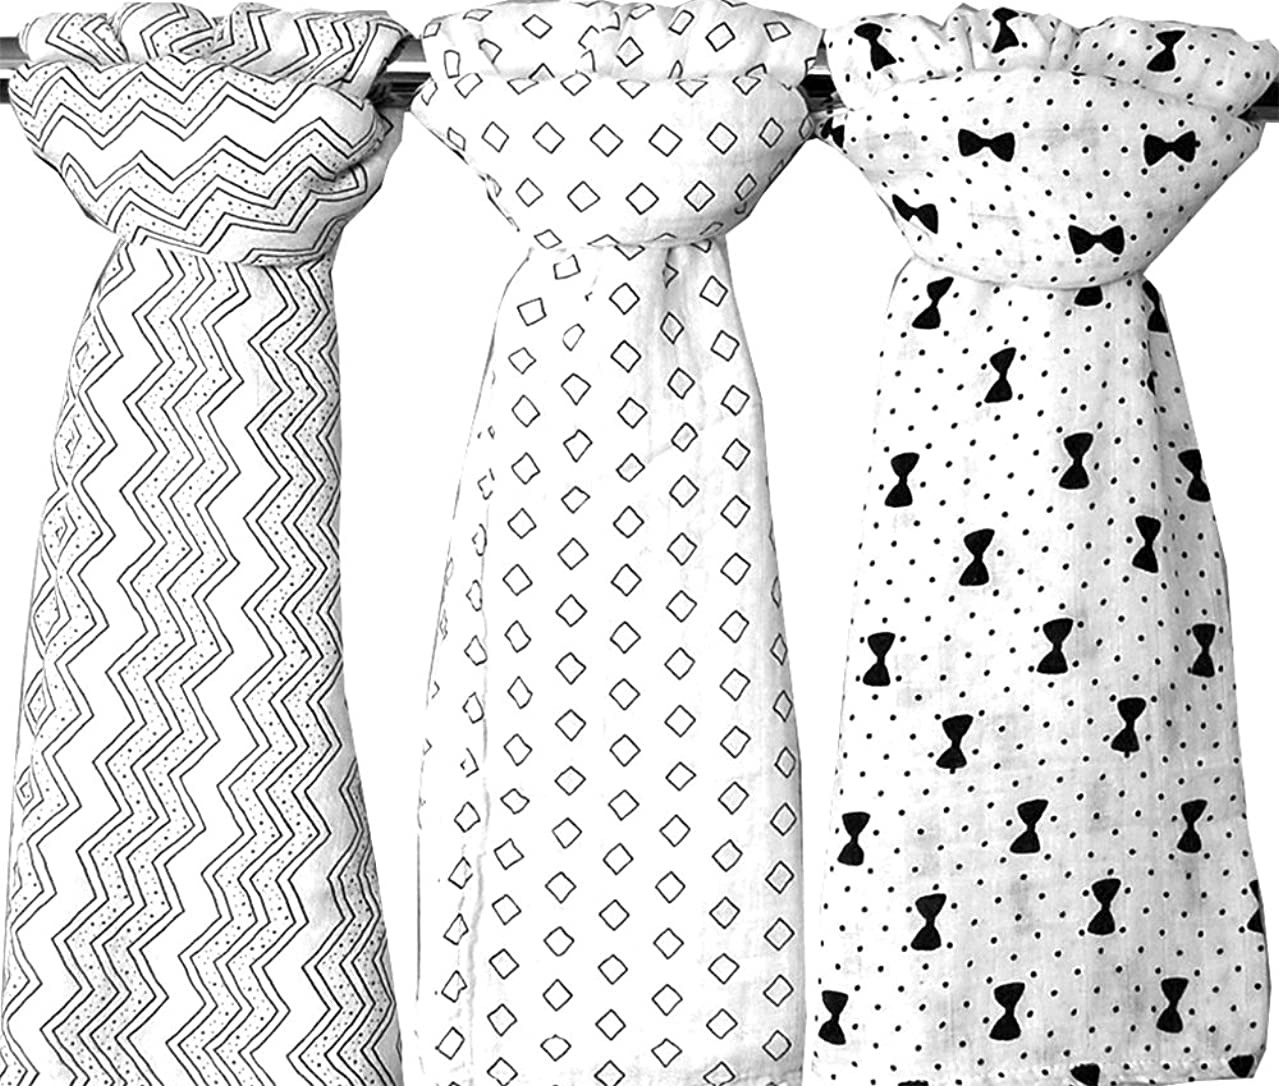 Bamboo Muslin Swaddle Baby Blankets Set of 3 - Organic X-Large Hypoallergenic - 3 Black and White Unisex Designs